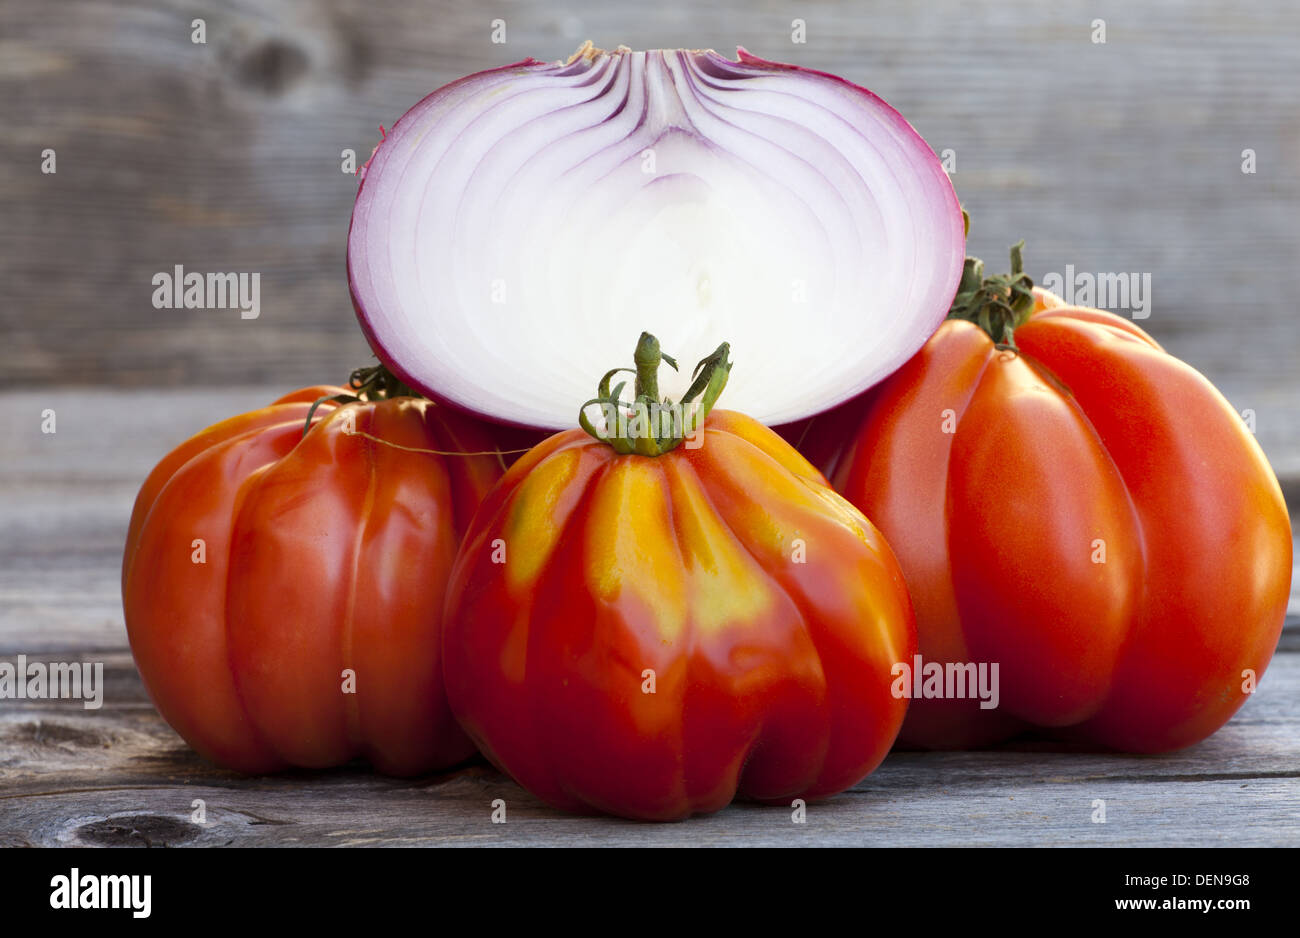 Three Oxheart Tomato and a halved red Onion from Weekly Market in South France on a old wooden Table - Stock Image